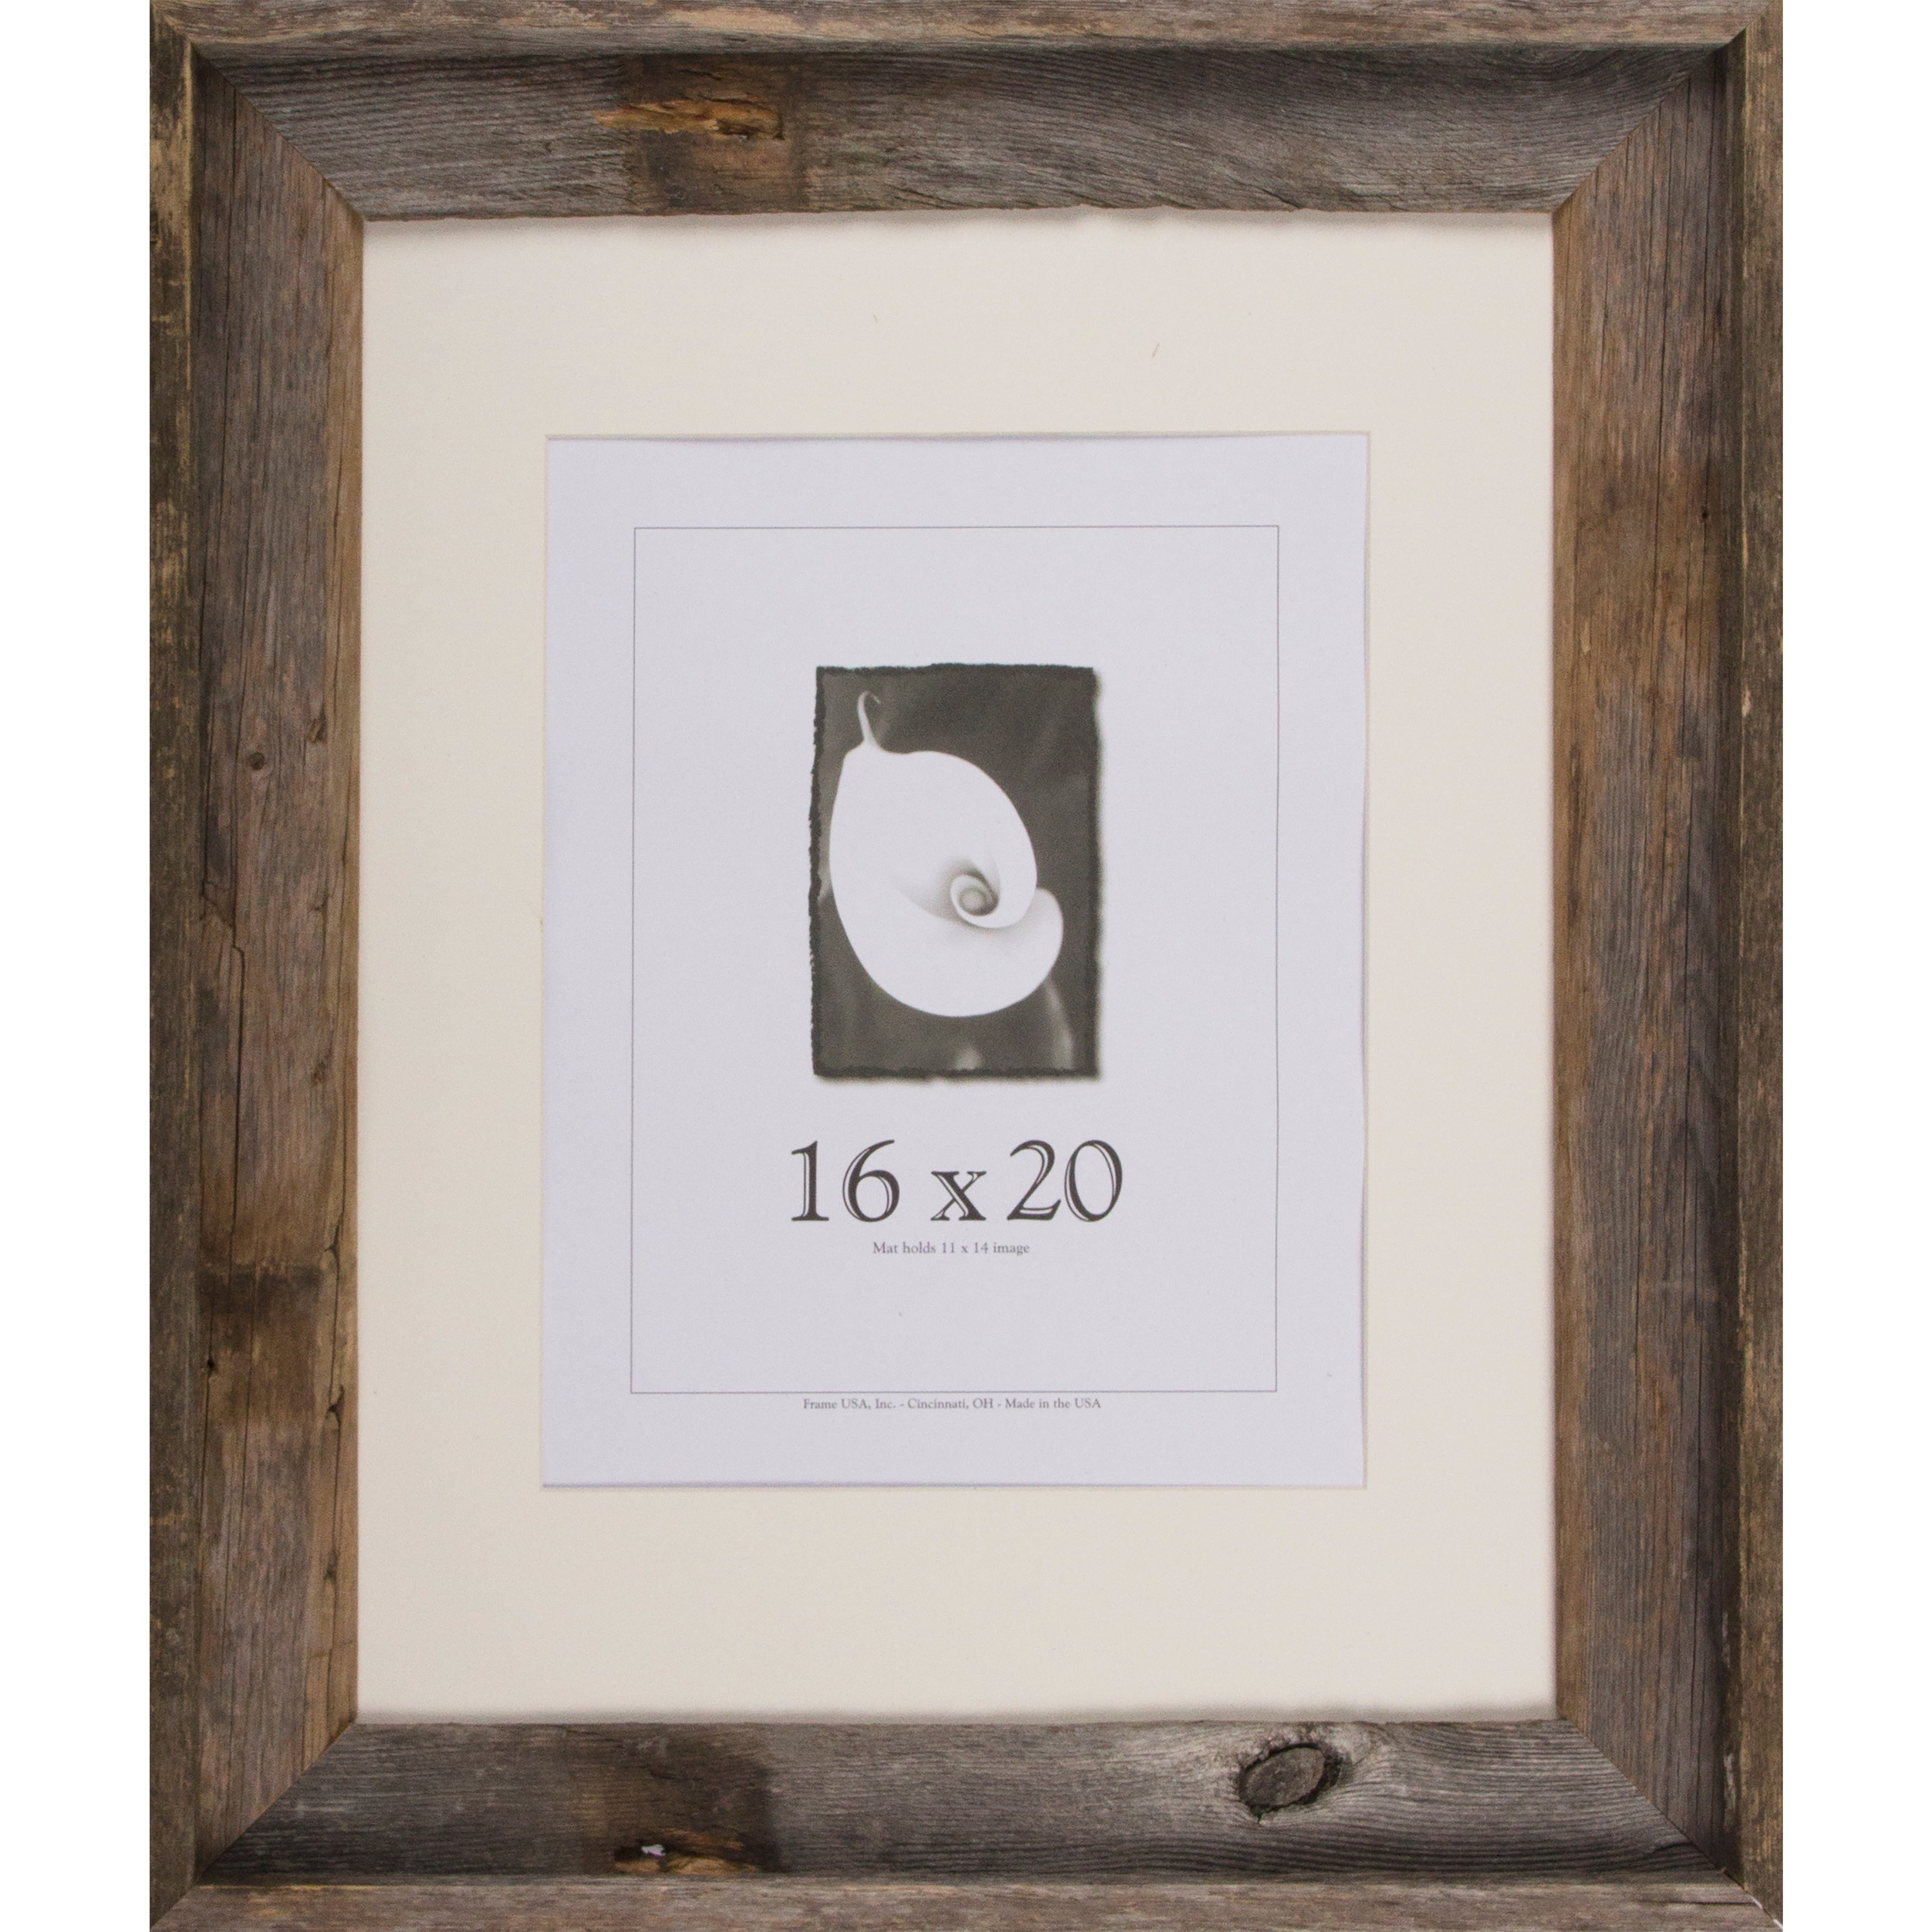 Shop Barnwood Signature Series Picture Frame (16 x 20) - Free ...